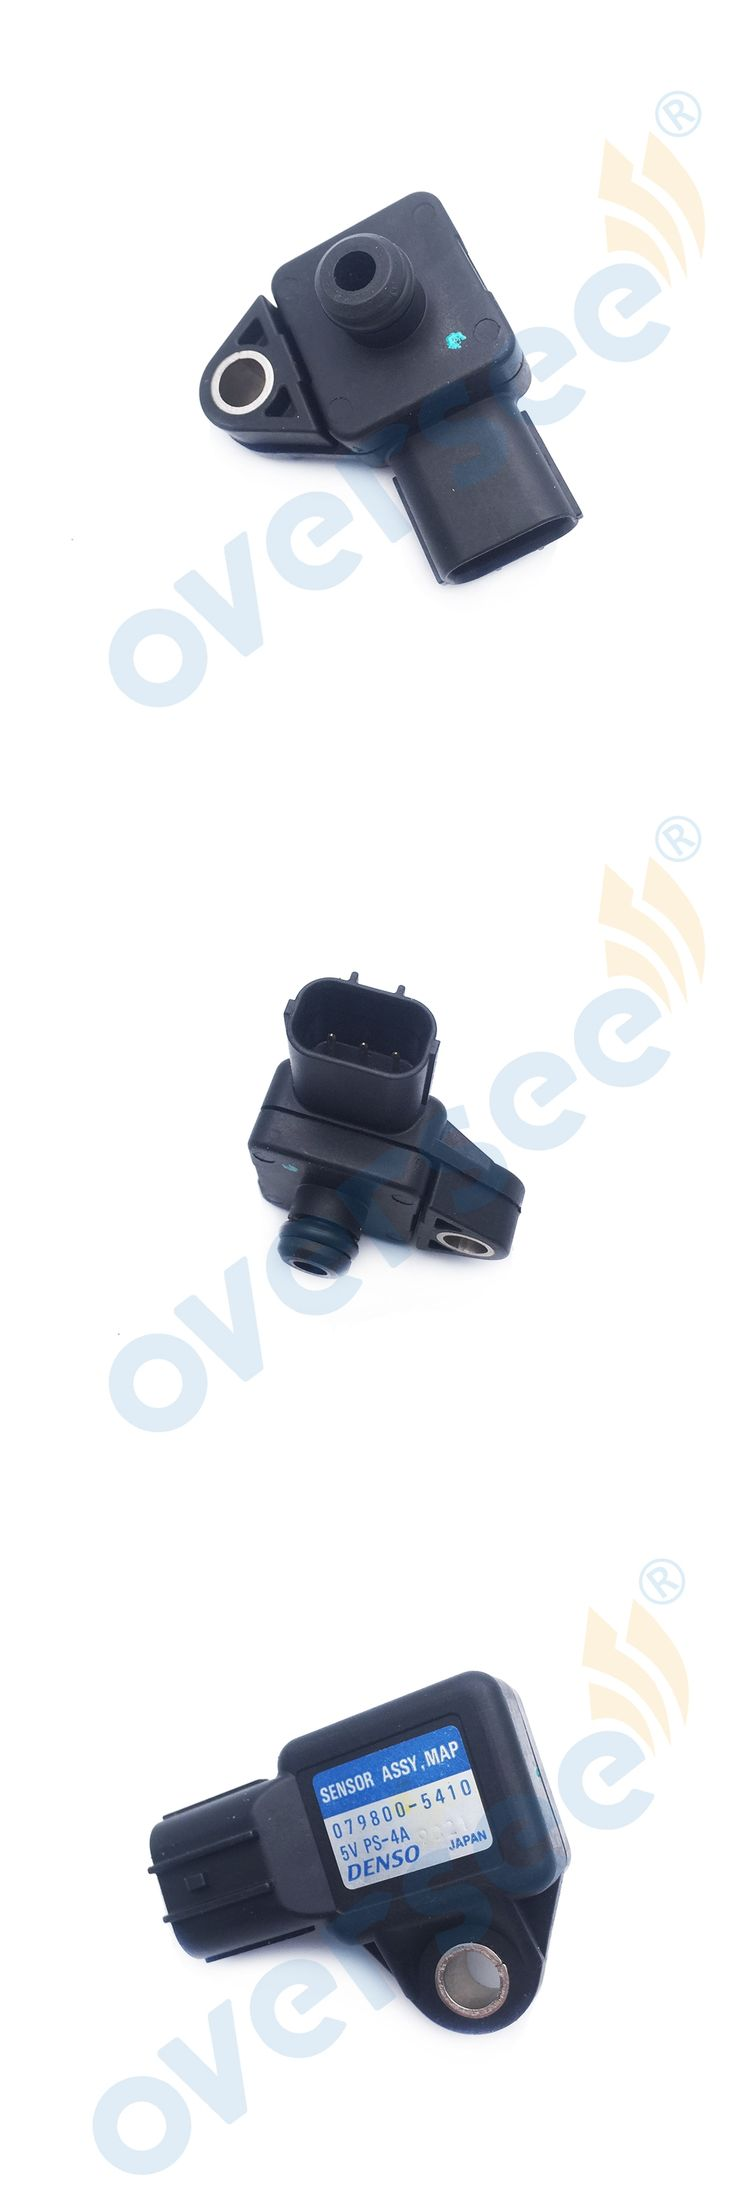 The 25 best map sensor ideas on pinterest auto electric repair oversee oem map sensor 37830 pgk a01 for outboard motor 4 stroke engine fandeluxe Images